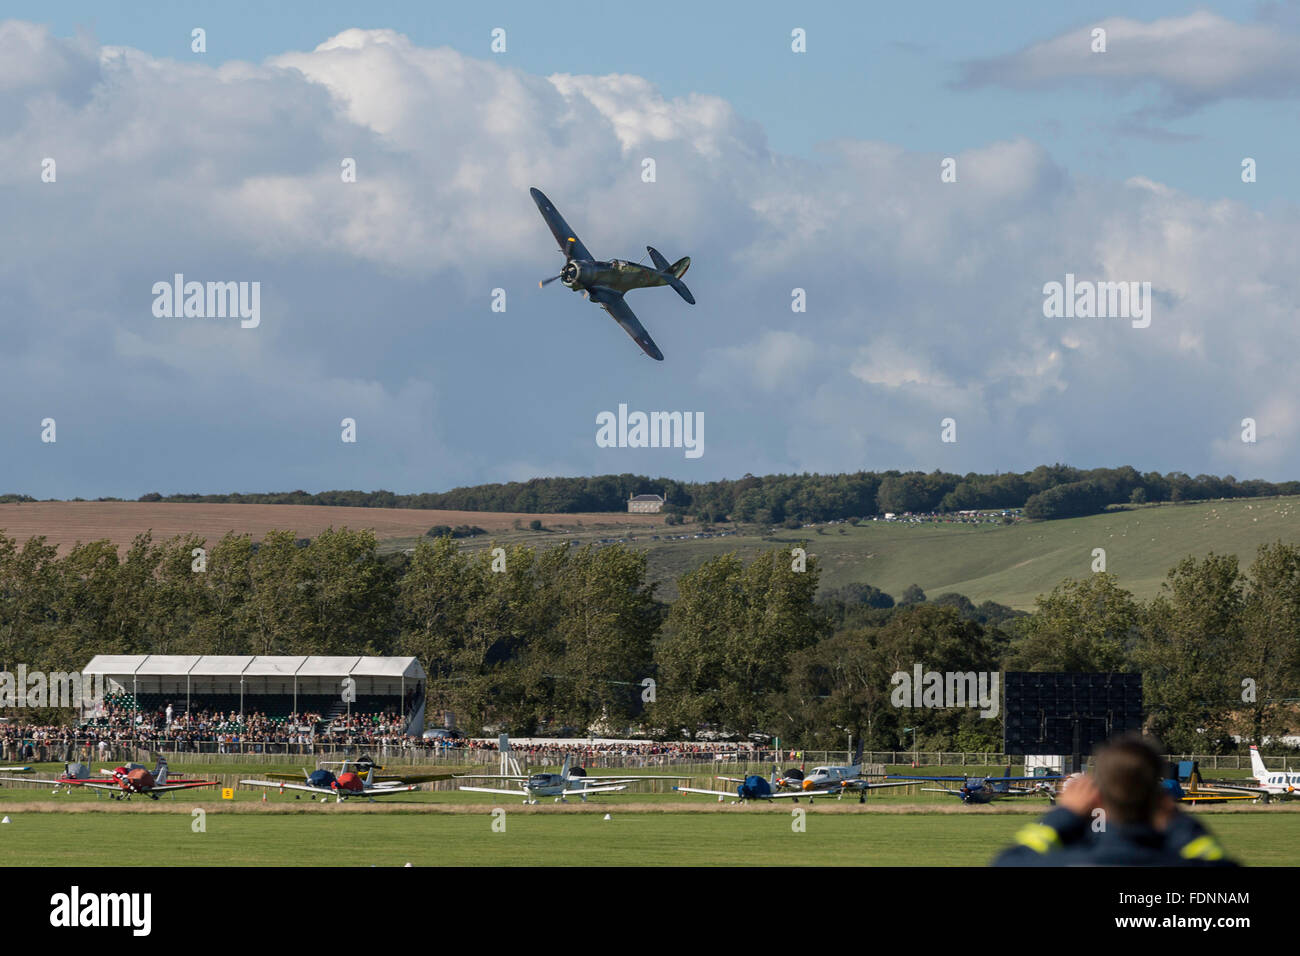 Flypast over Goodwood aerodrome during the Revival - Stock Image